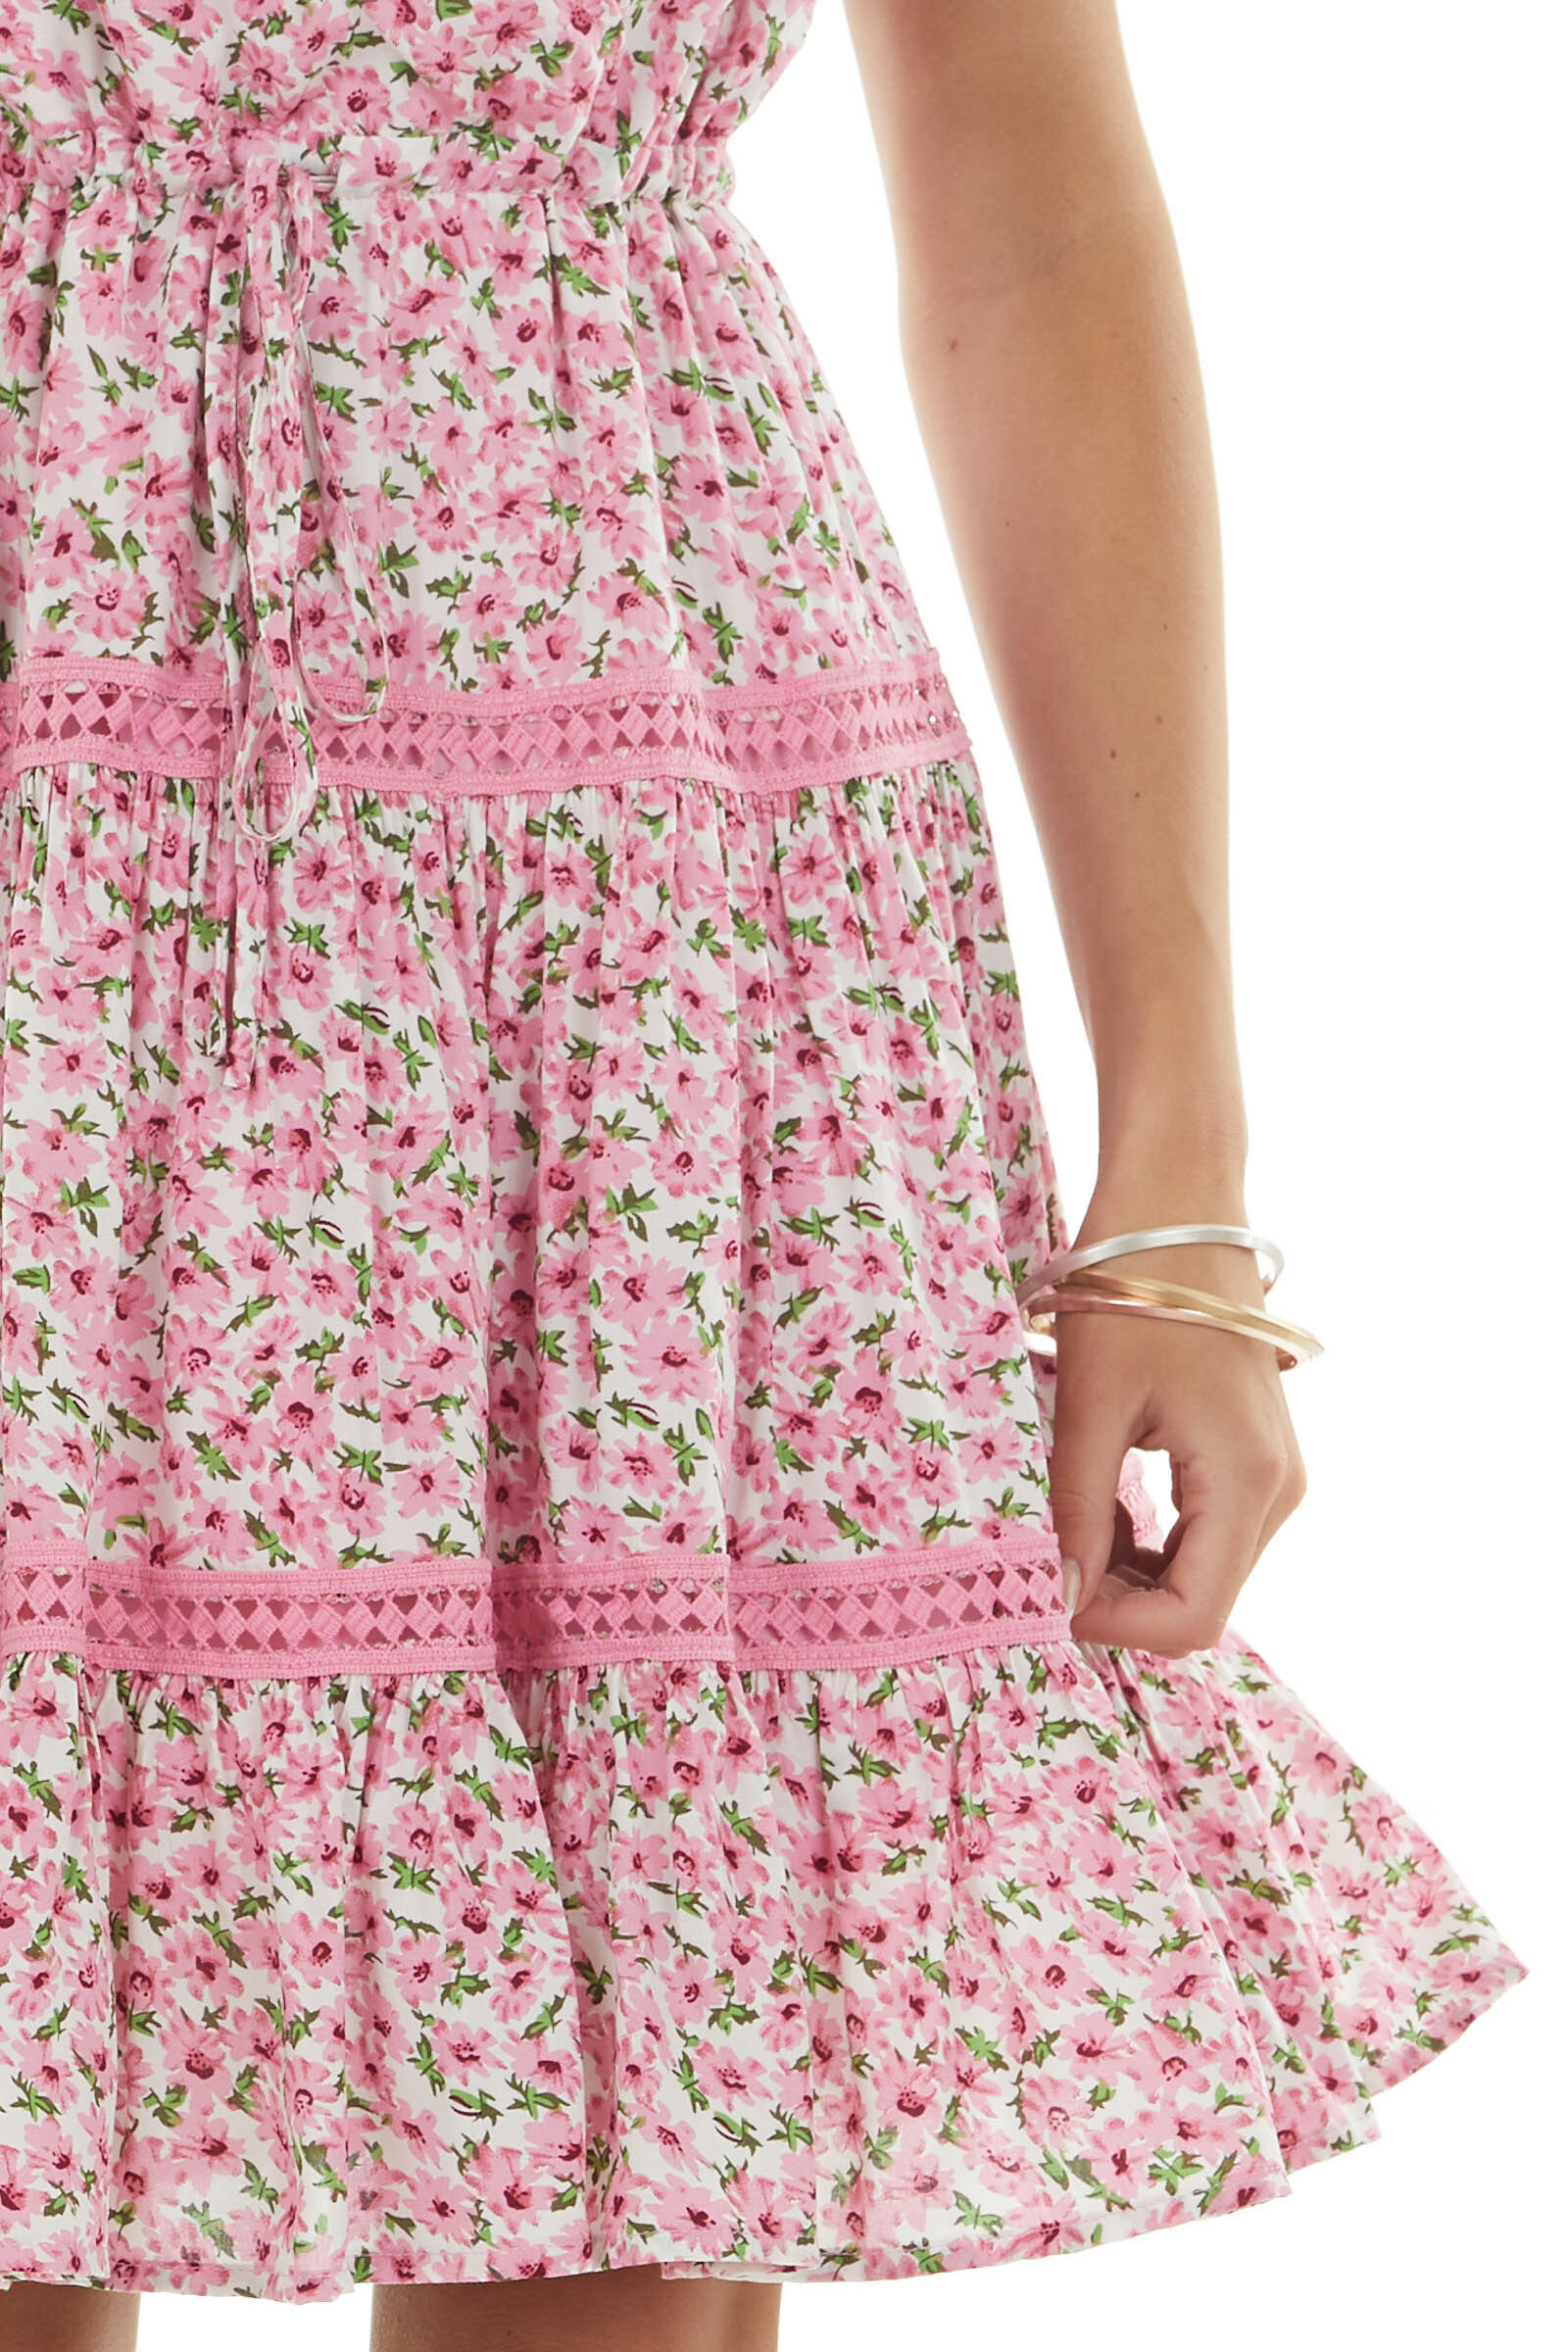 Carnation Floral and Lace Surplice Woven Dress